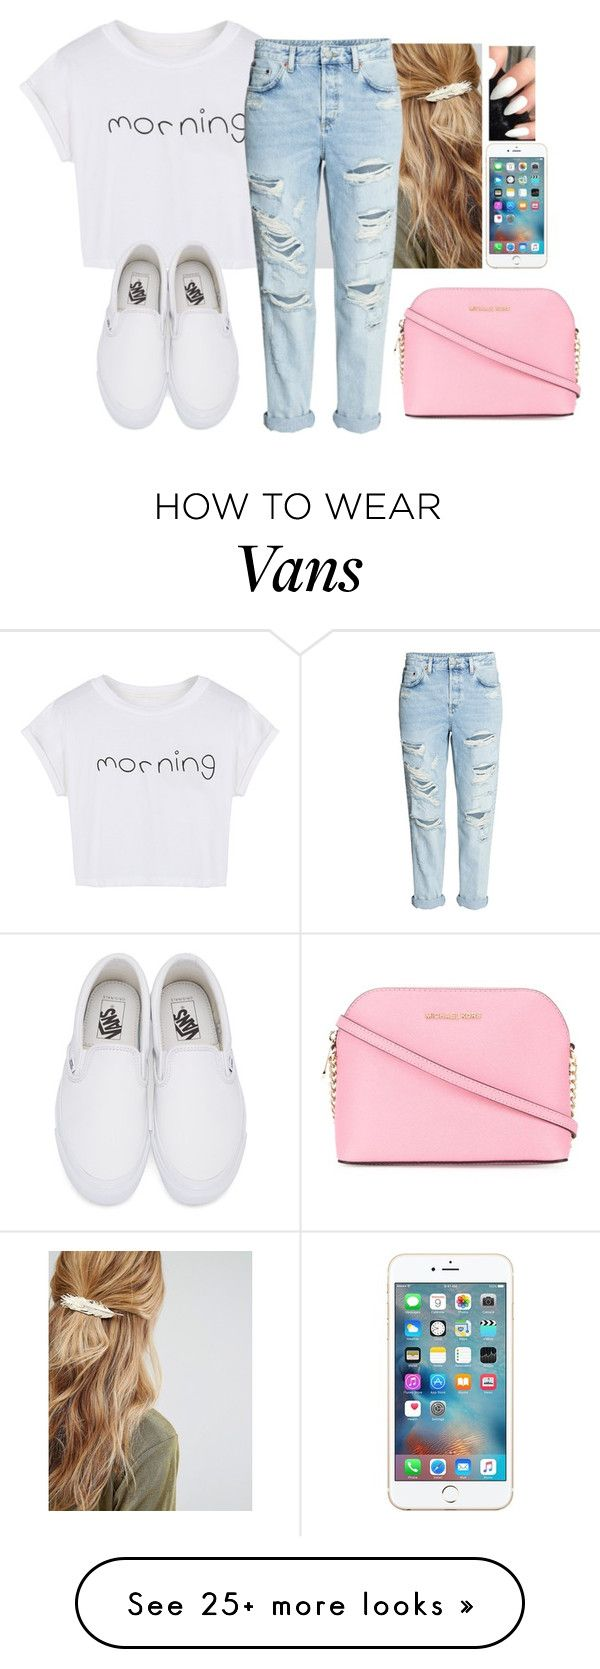 """""""Be cool✌"""" by hannahmcpherson12 on Polyvore featuring Johnny Loves Rosie, WithChic, Vans and MICHAEL Michael Kors"""